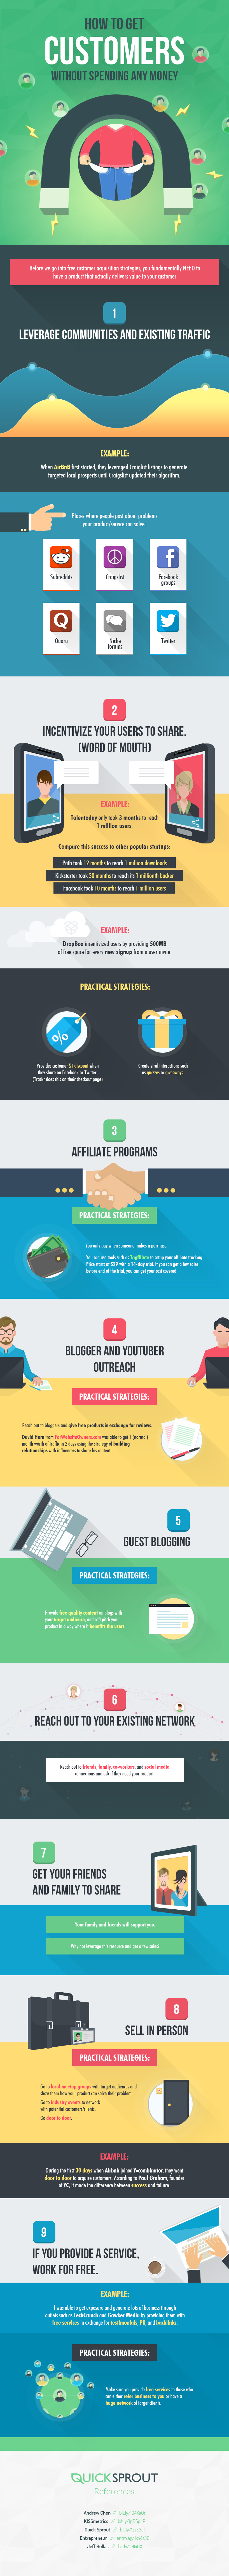 Infographic outlines tips to help generate more leads